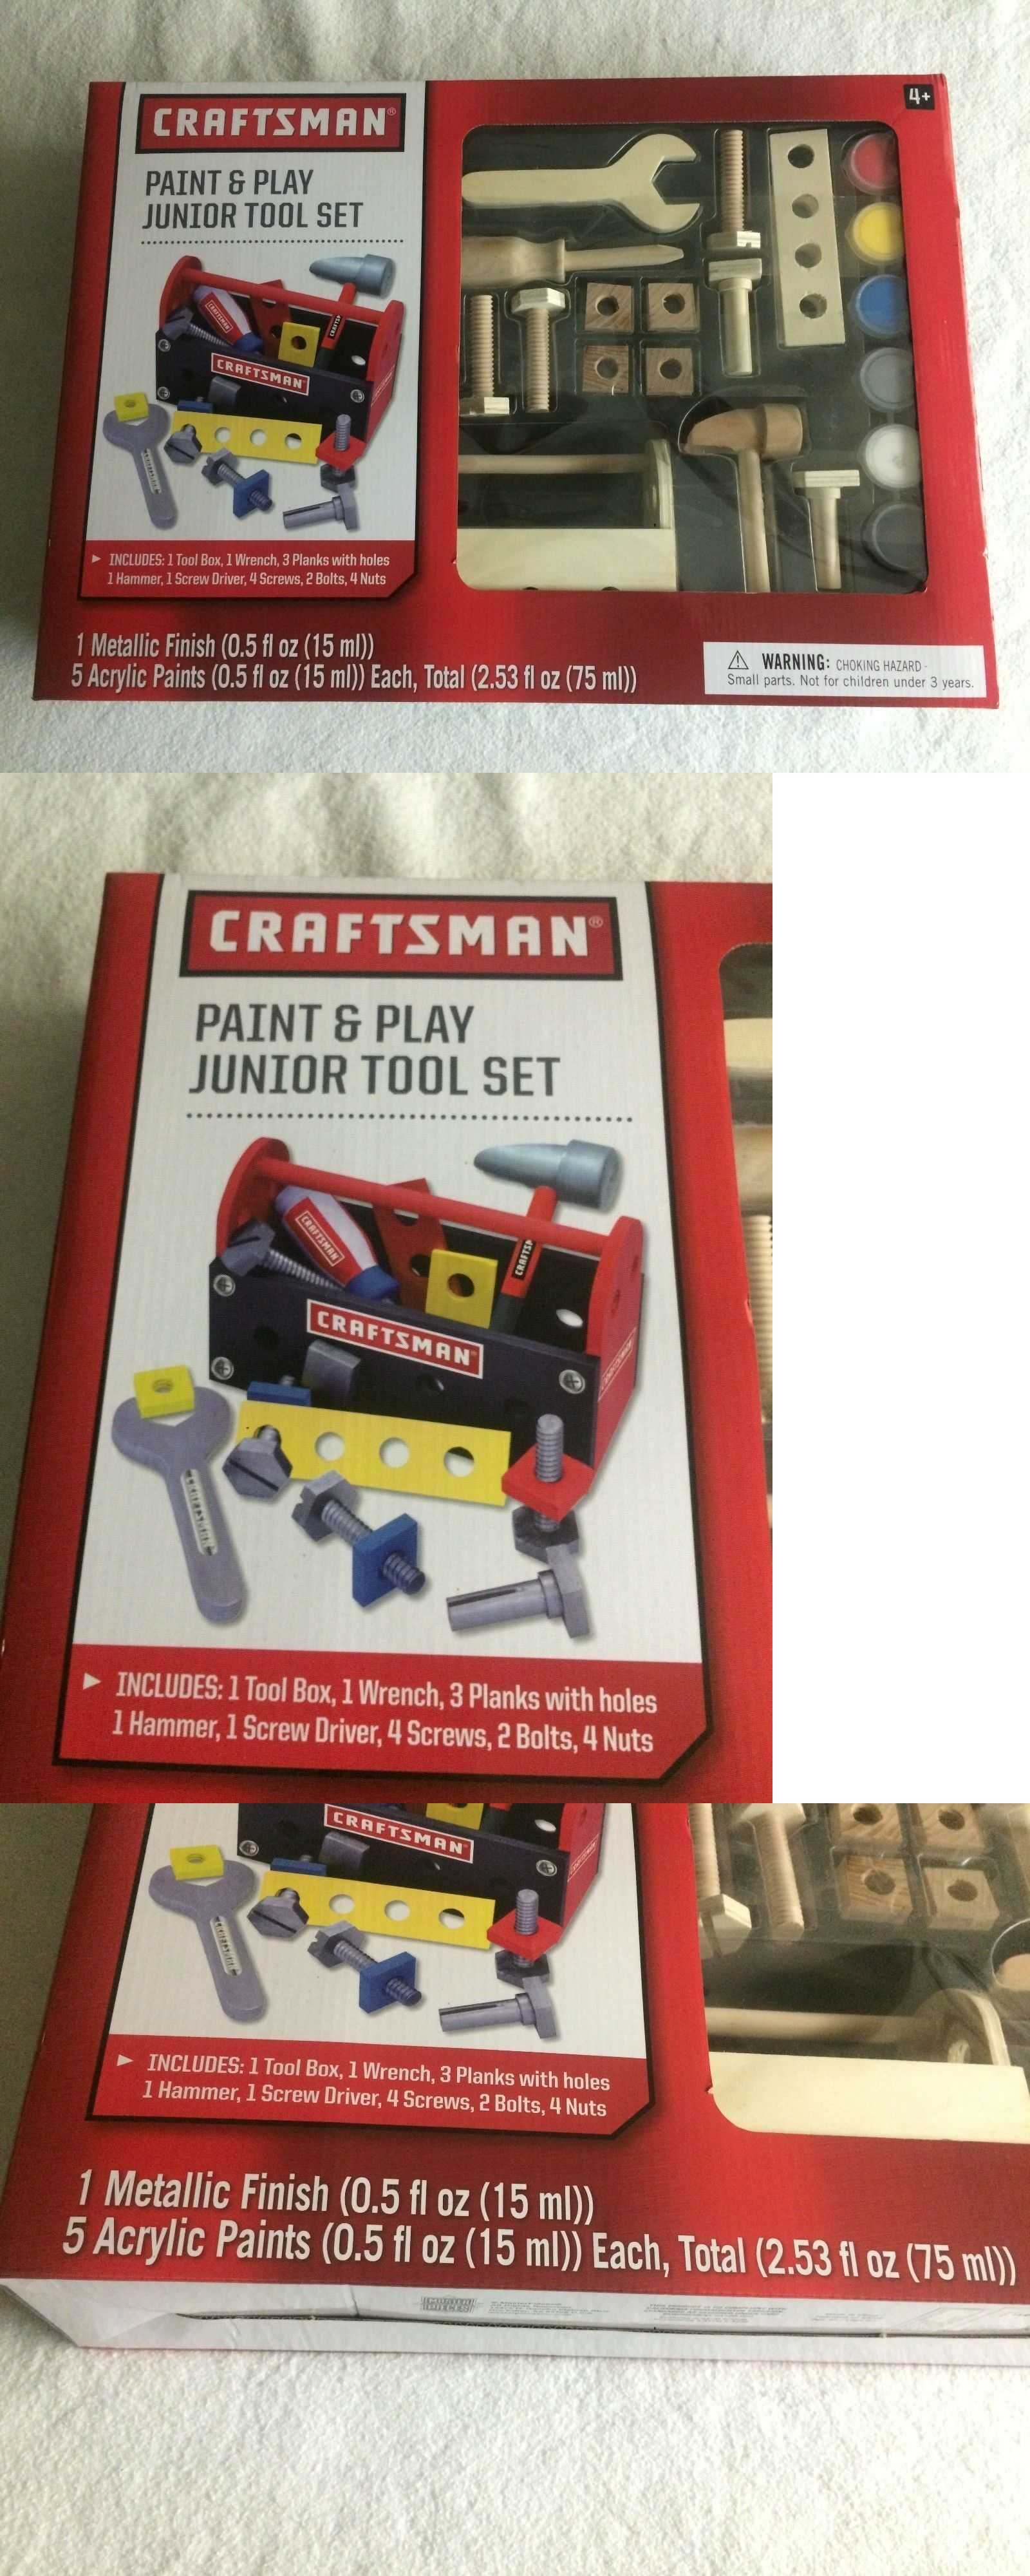 Sensational Tool Sets 158747 Craftsman Paint And Play Junior Kids Toys Machost Co Dining Chair Design Ideas Machostcouk